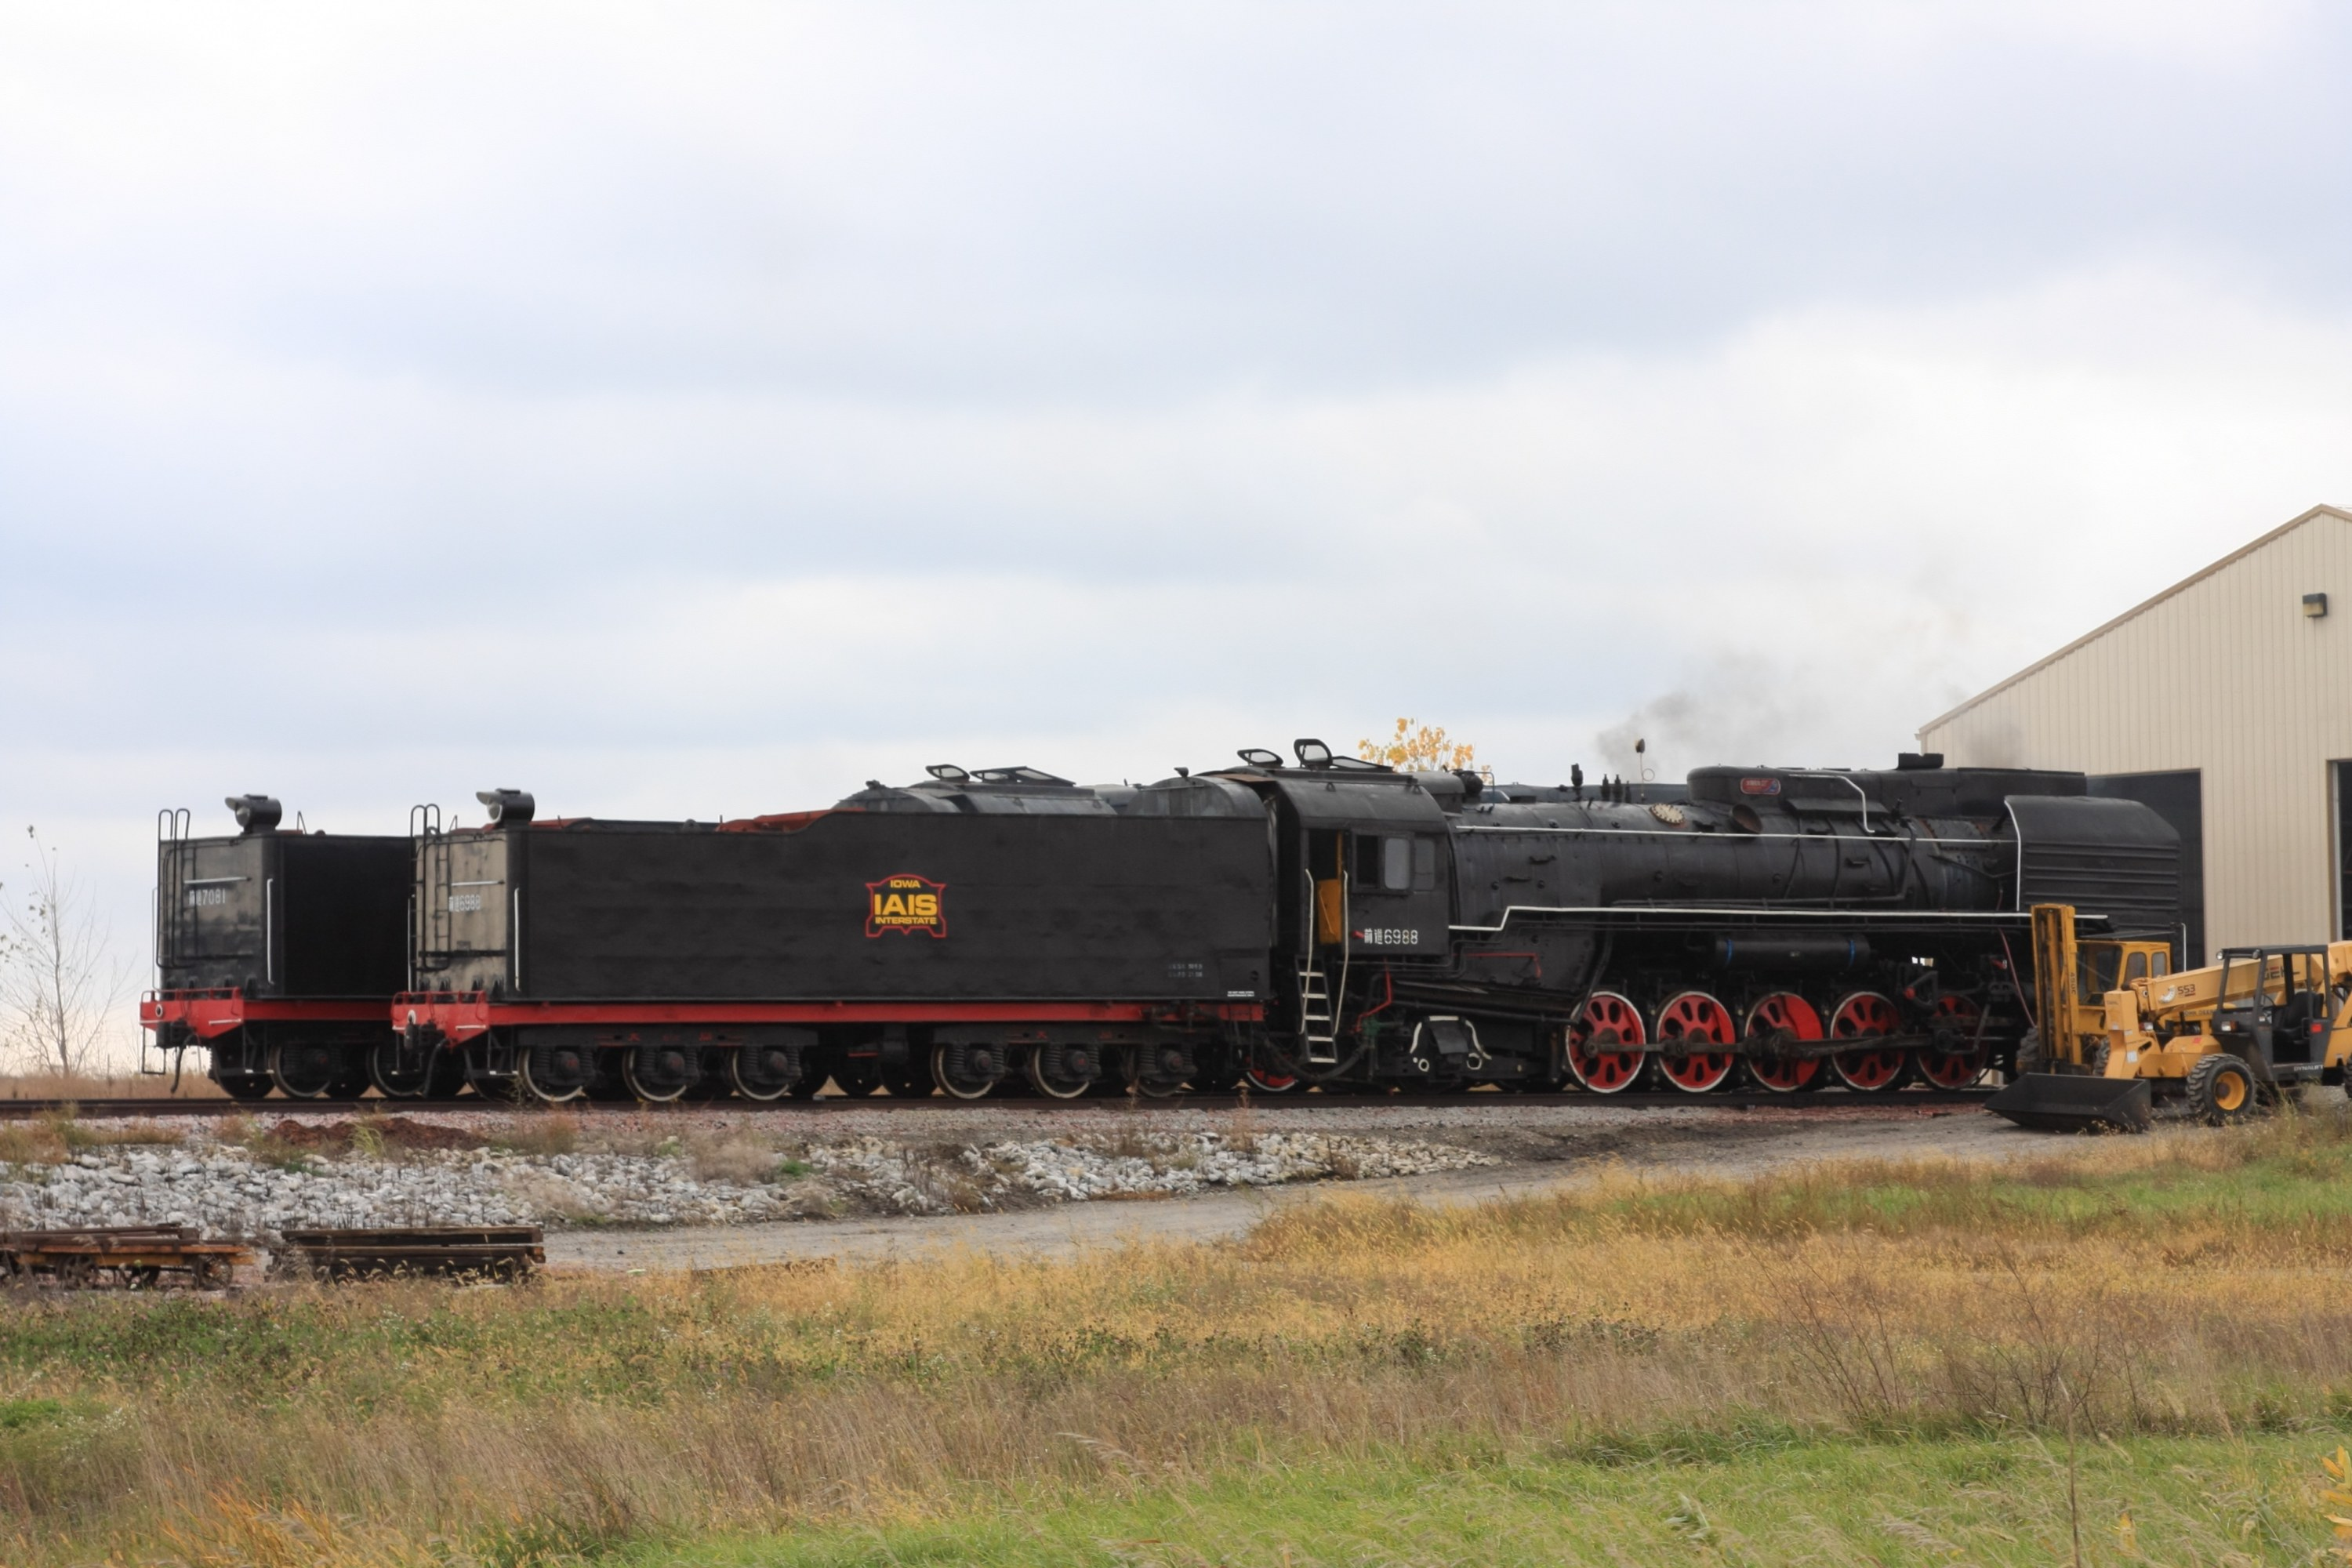 QJs smoking away at Newton - should be heading out in a day or so